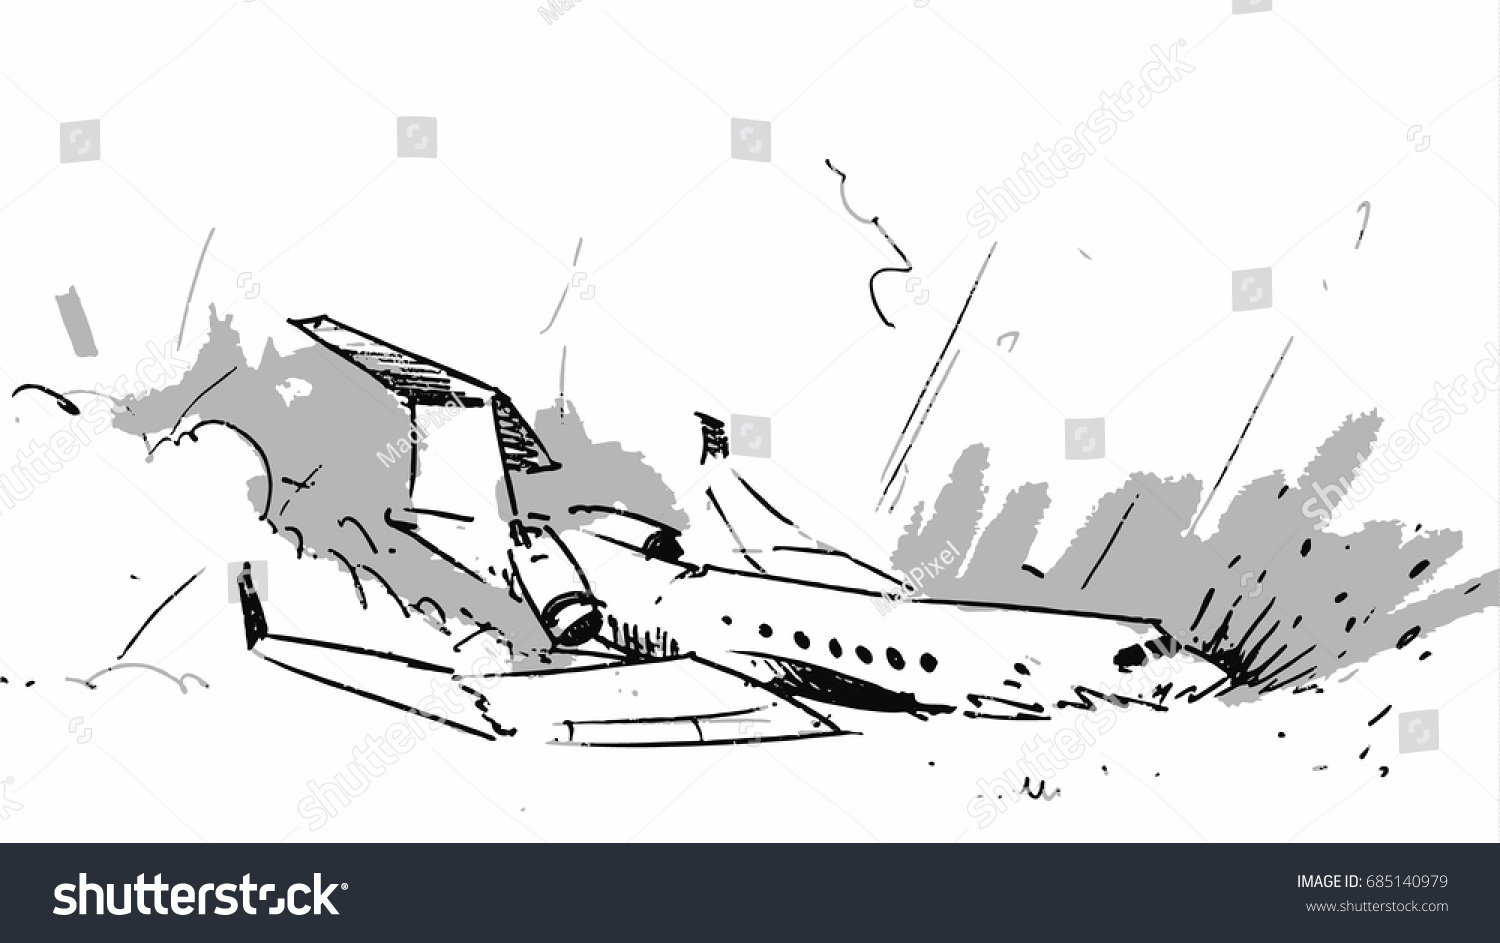 Airplane Crashed Accident Vector Sketch Illustration Stock Vector ...